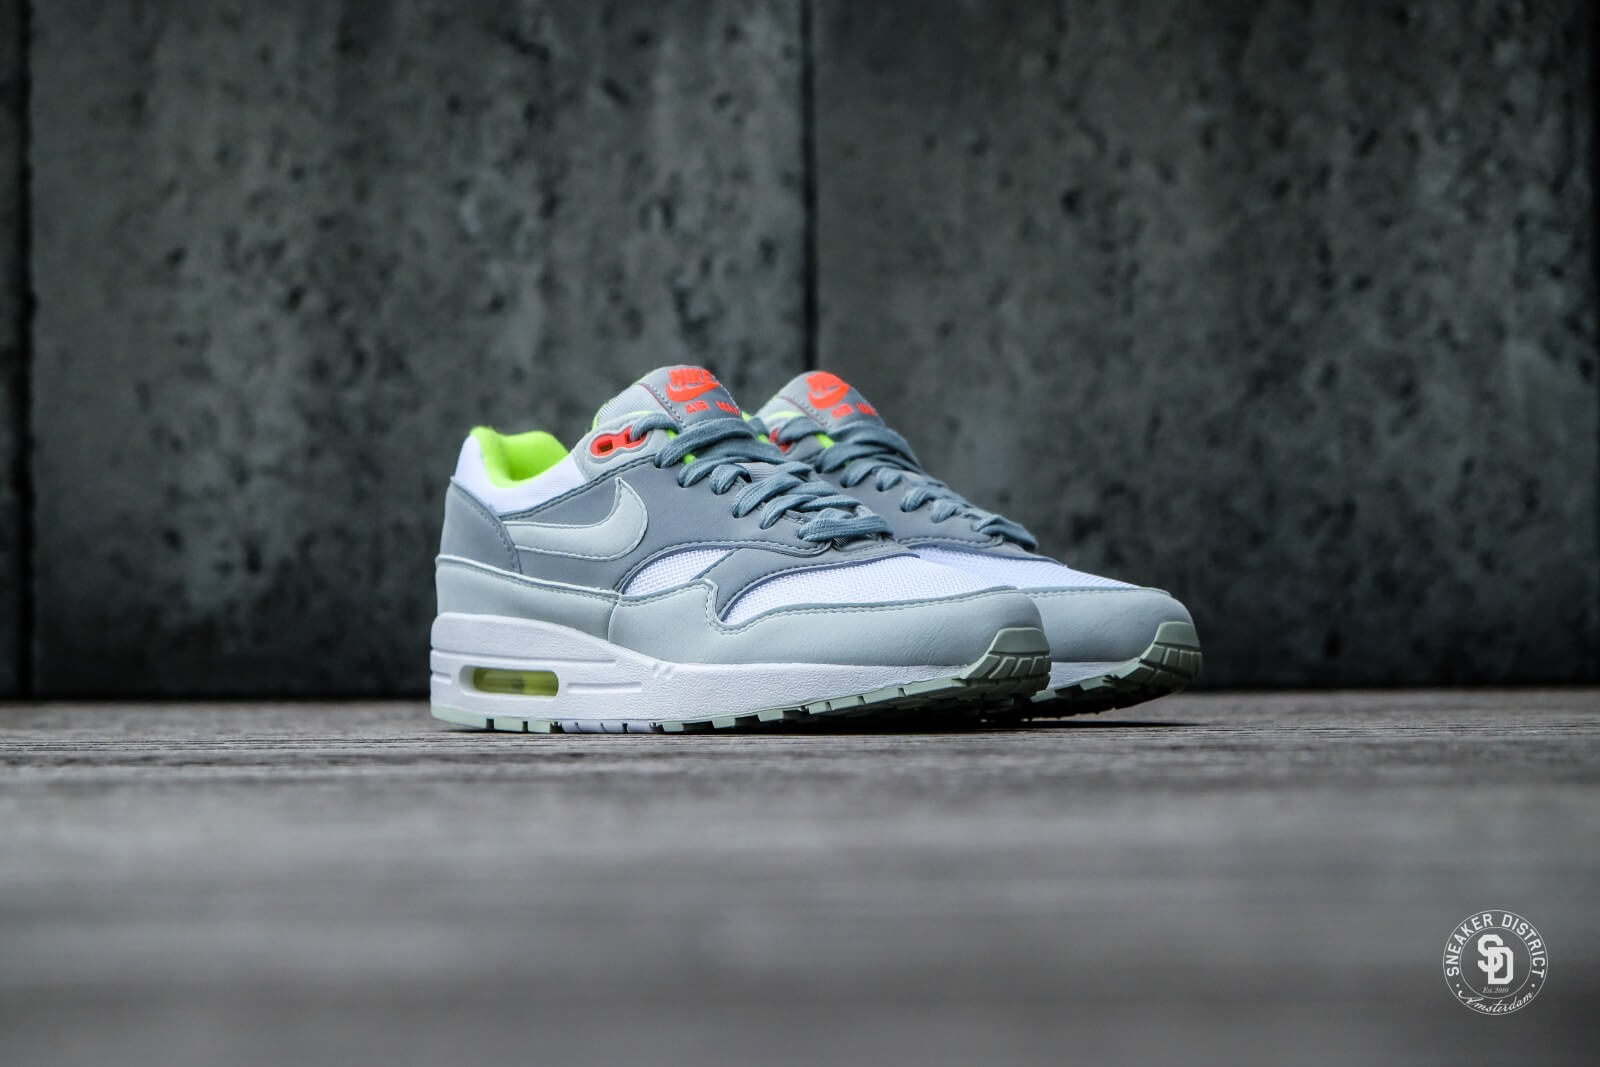 Nike Women's Air Max 1 WhiteBarely Grey Light Pumice Volt